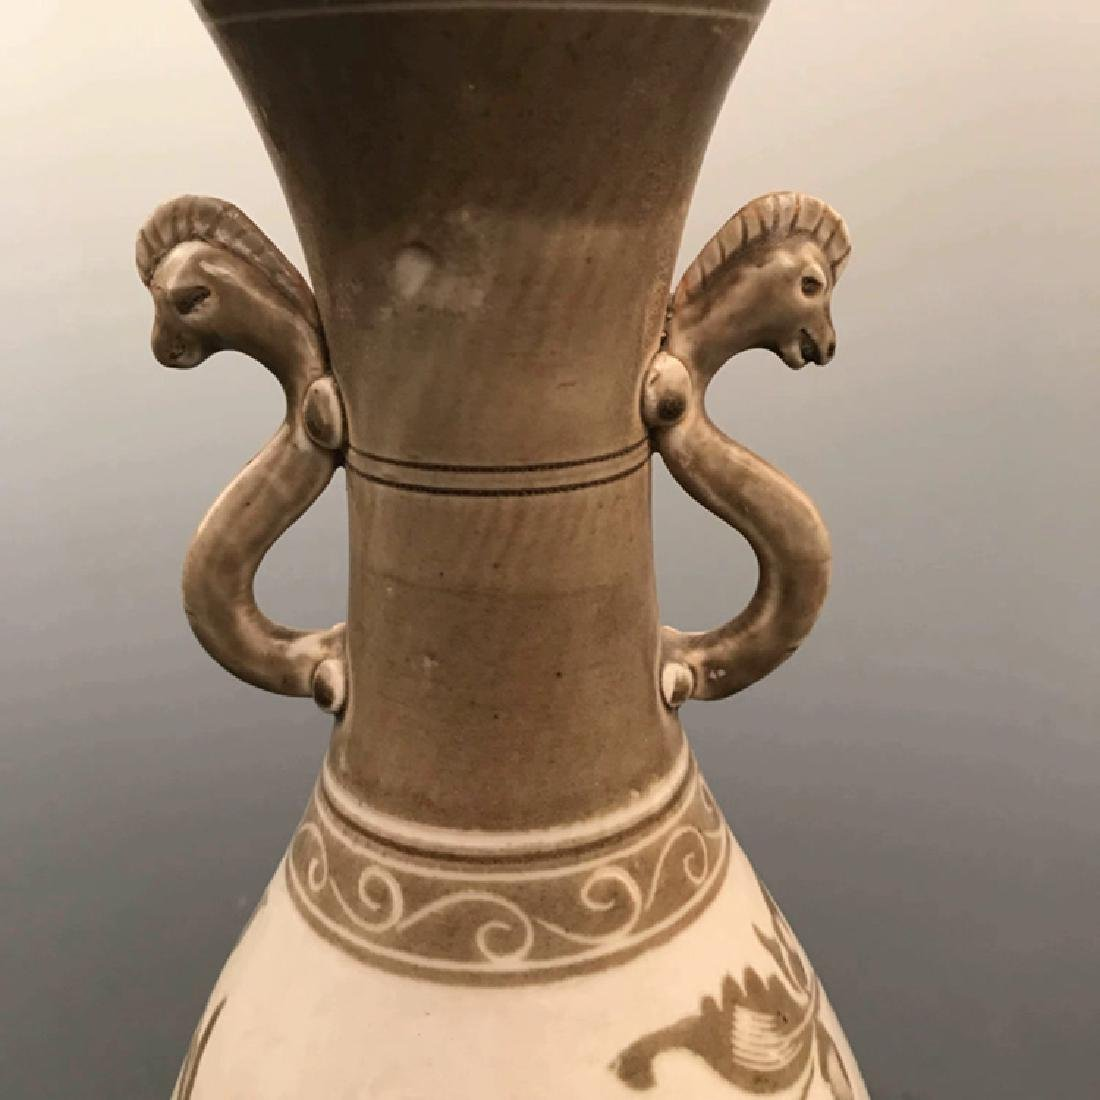 Chinese Ding Yao Brown Vase - 2